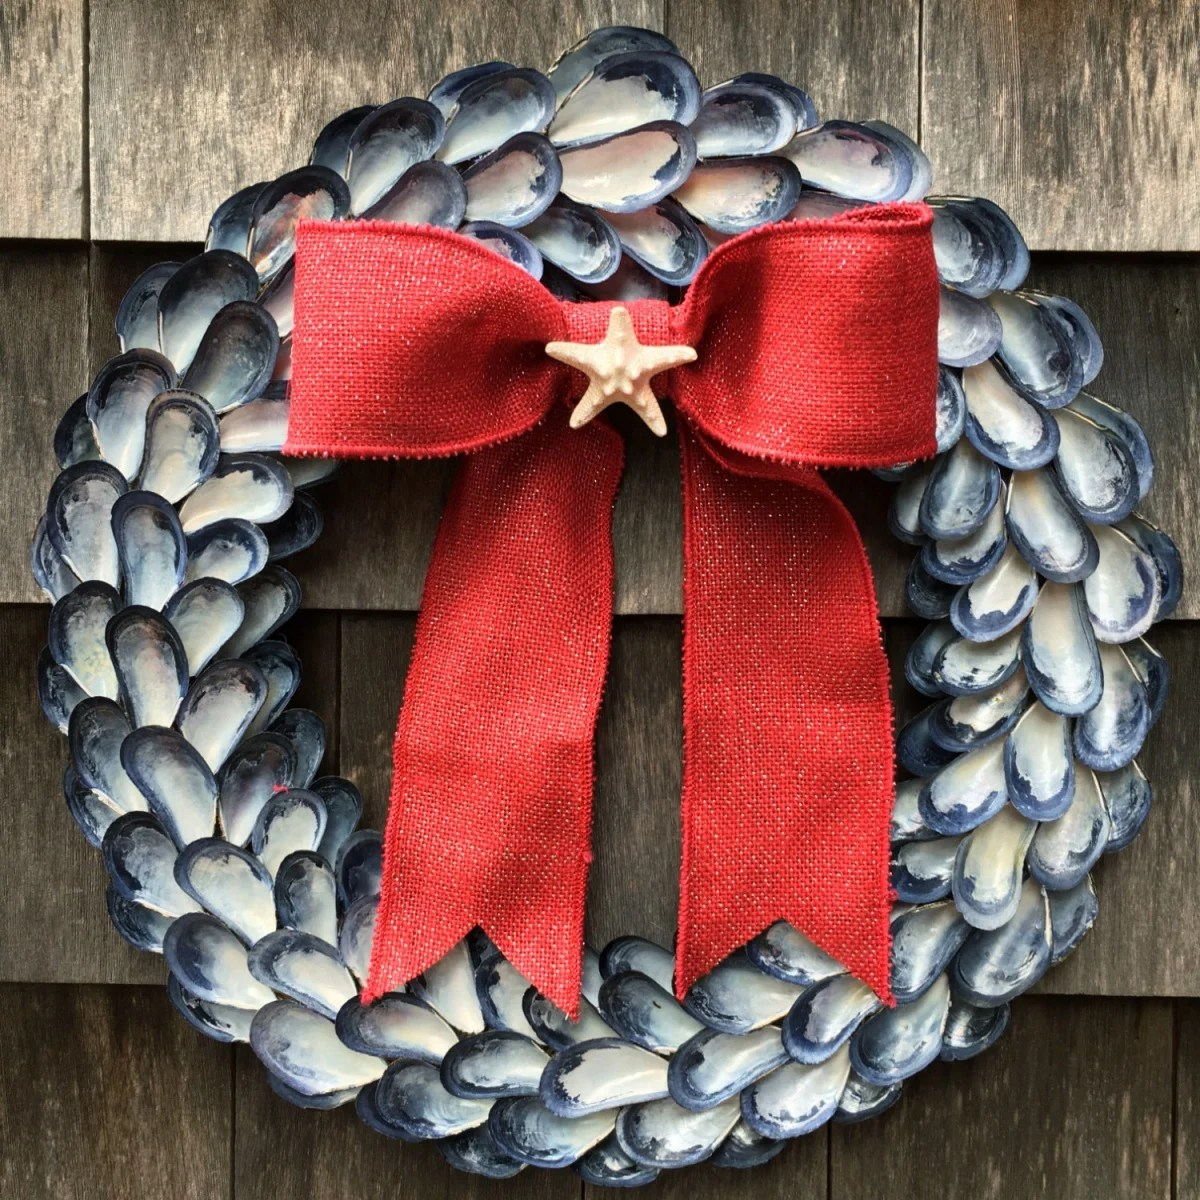 21 Artificial Christmas Wreath Ideas For Stunning Front